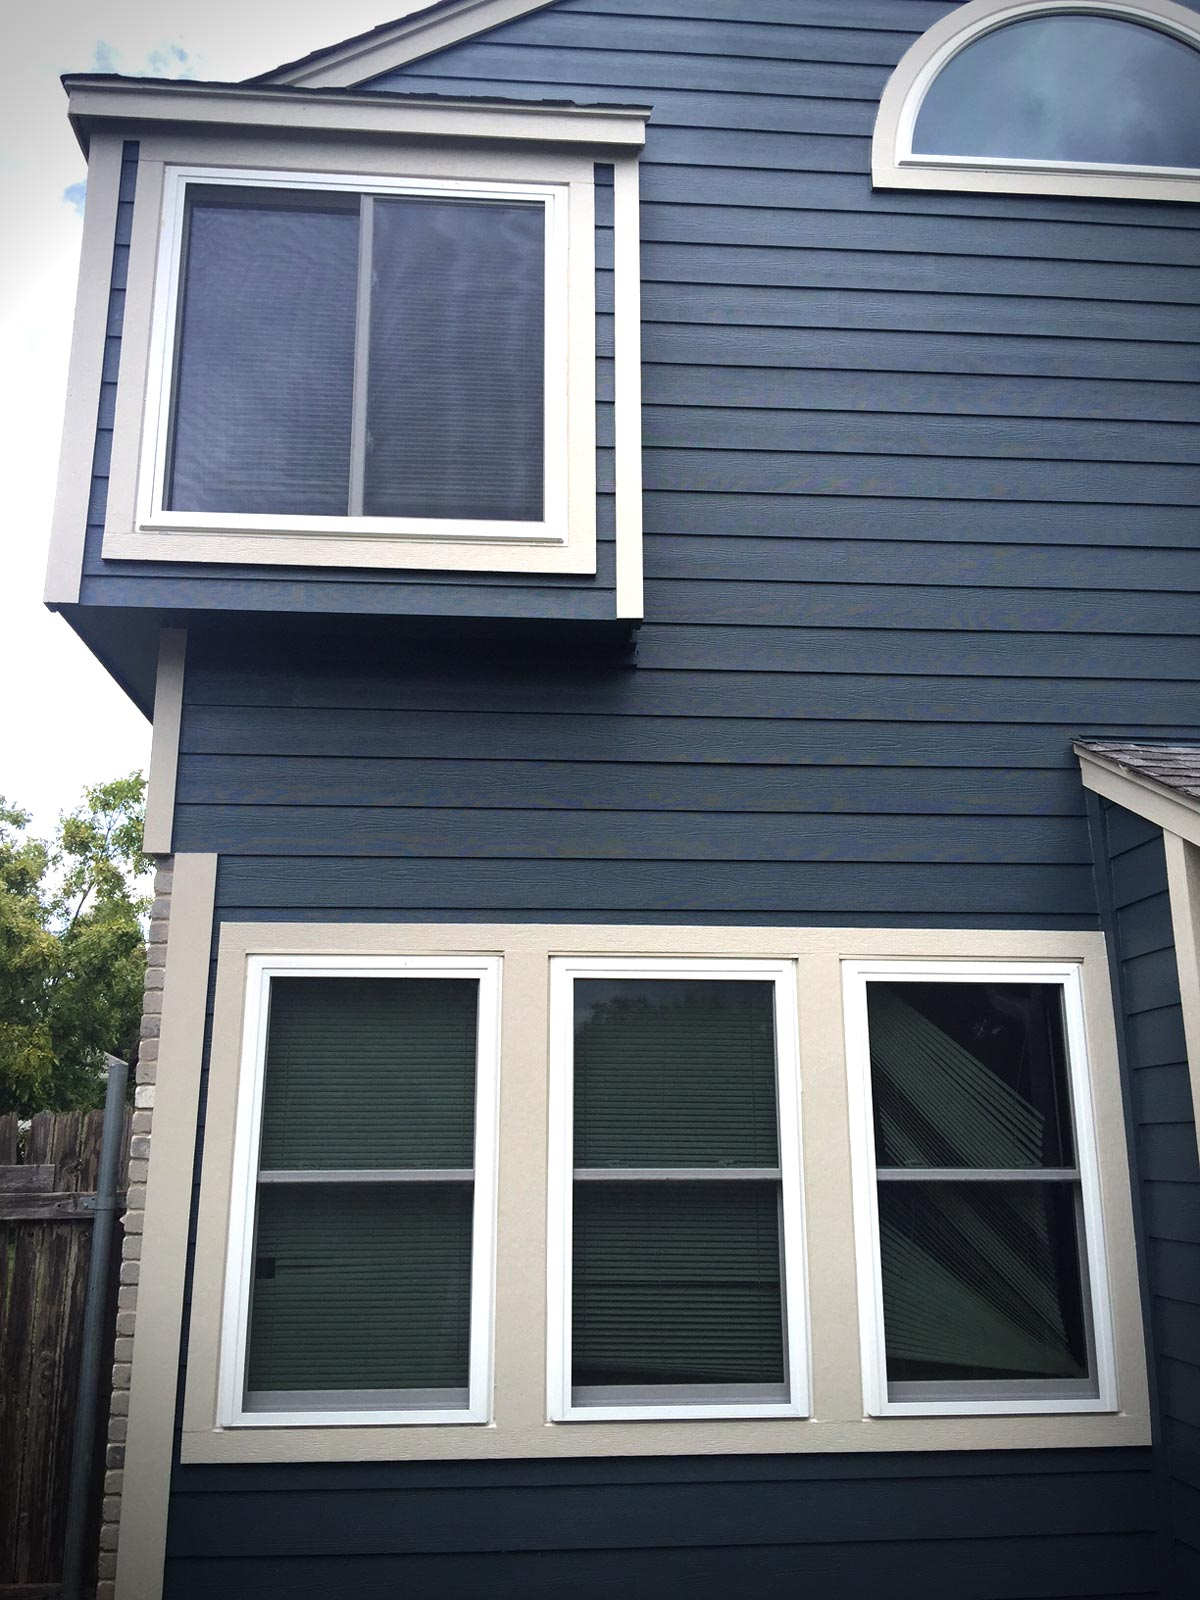 Siding Install At Slaughter And First Jp Construction